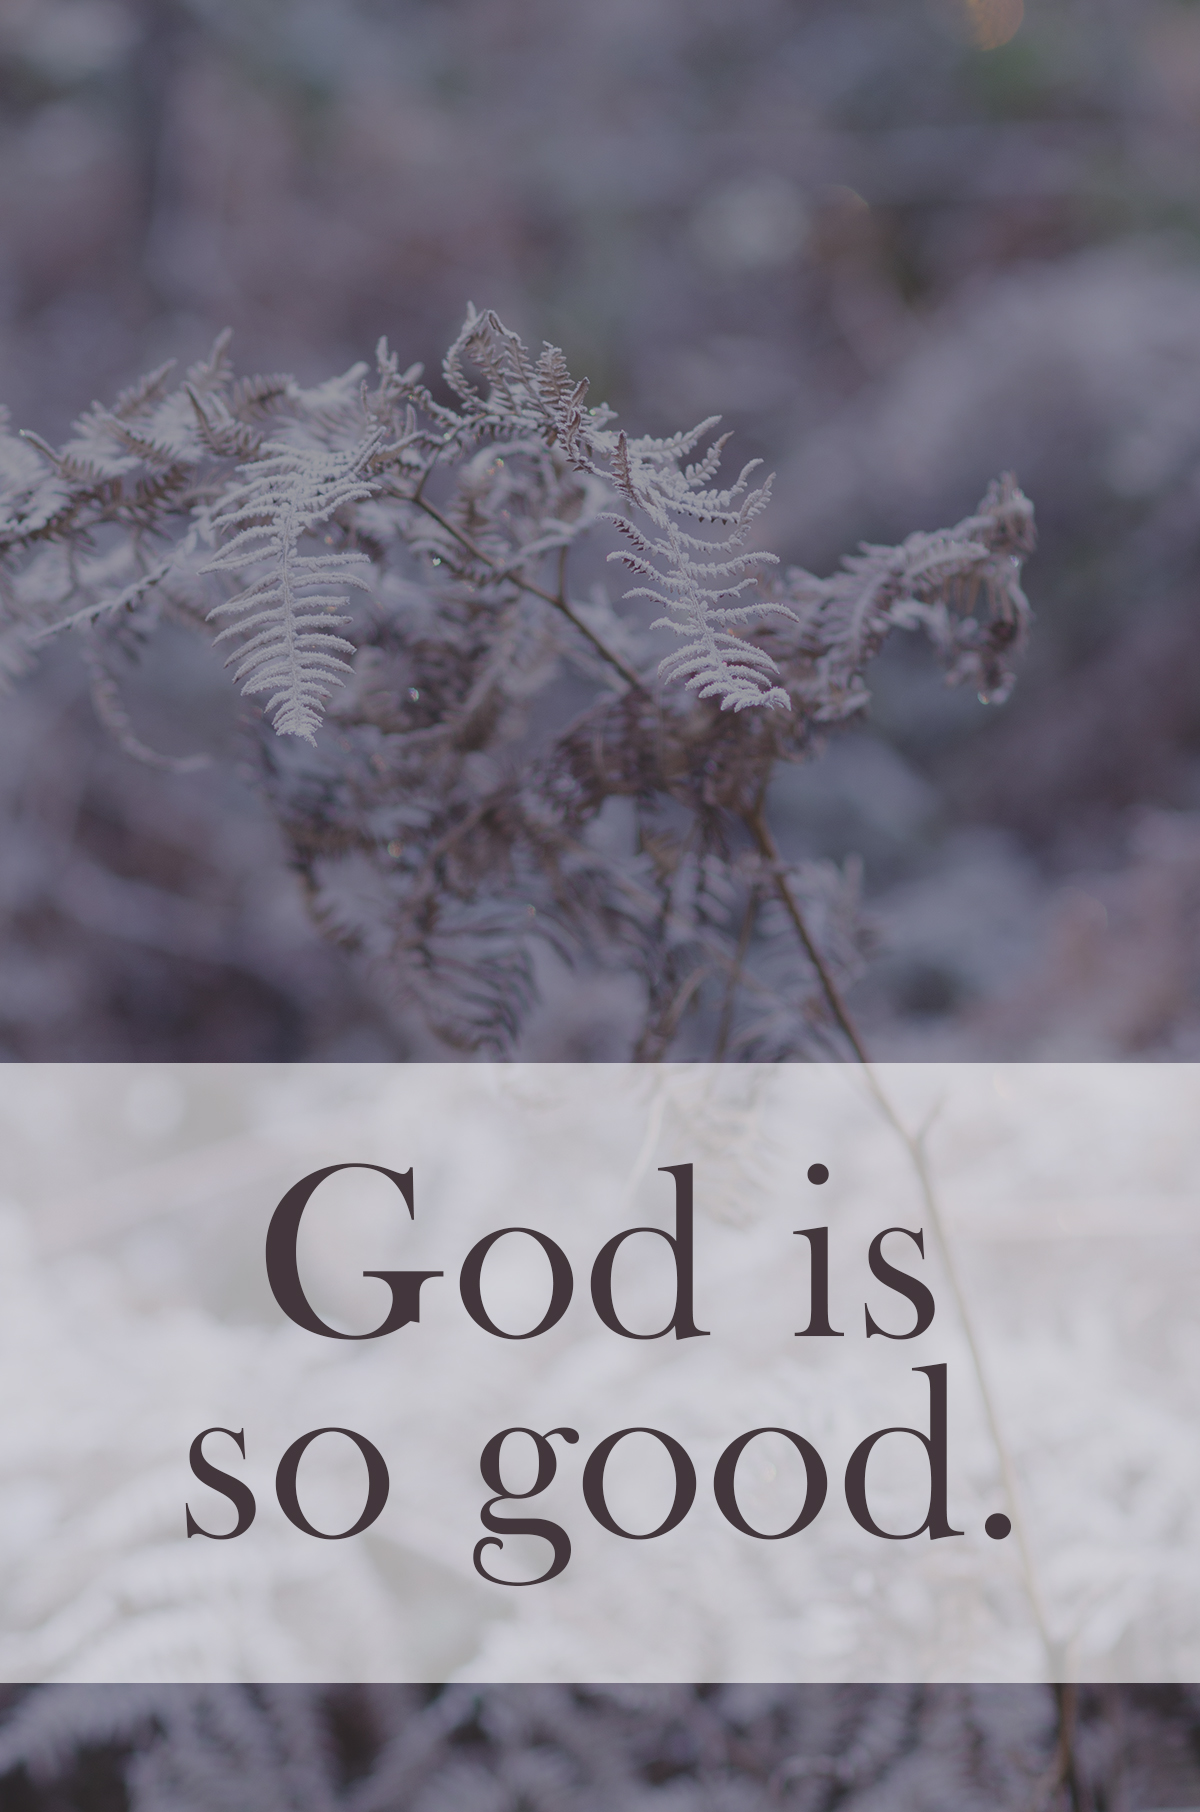 This is the story our God is writing: a story of the unexpected, the undeserved. He is sovereign over the universe and yet instead of demanding rich temples, shrines, and tributes, He gives. He is so good.